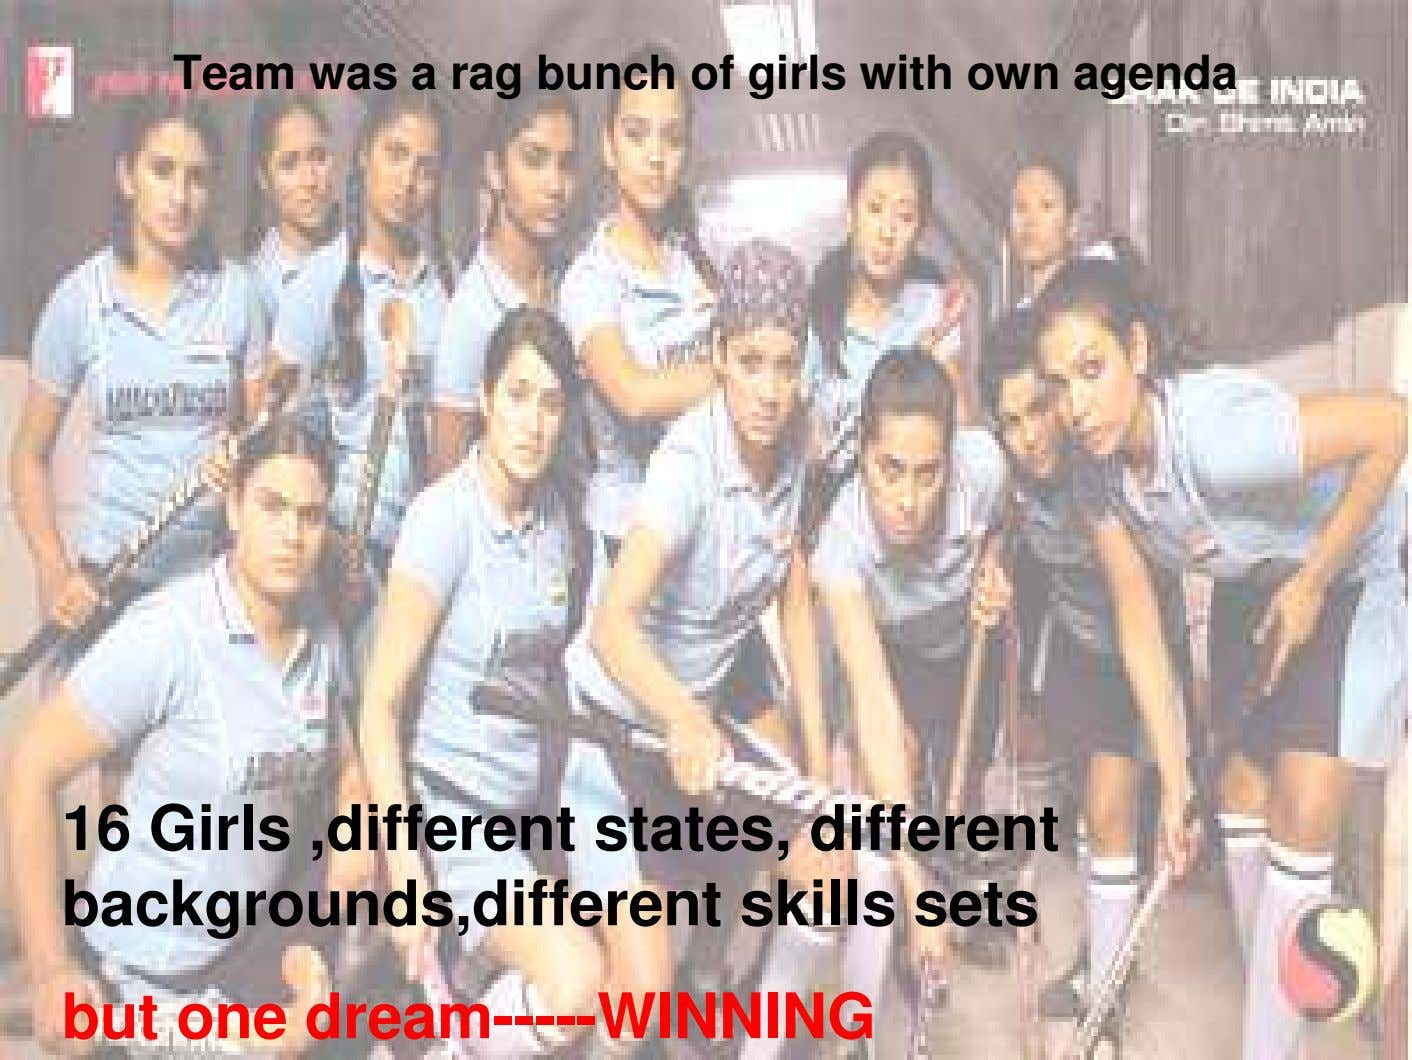 Team was a rag bunch of girls with own agenda 16 Girls ,different states, different